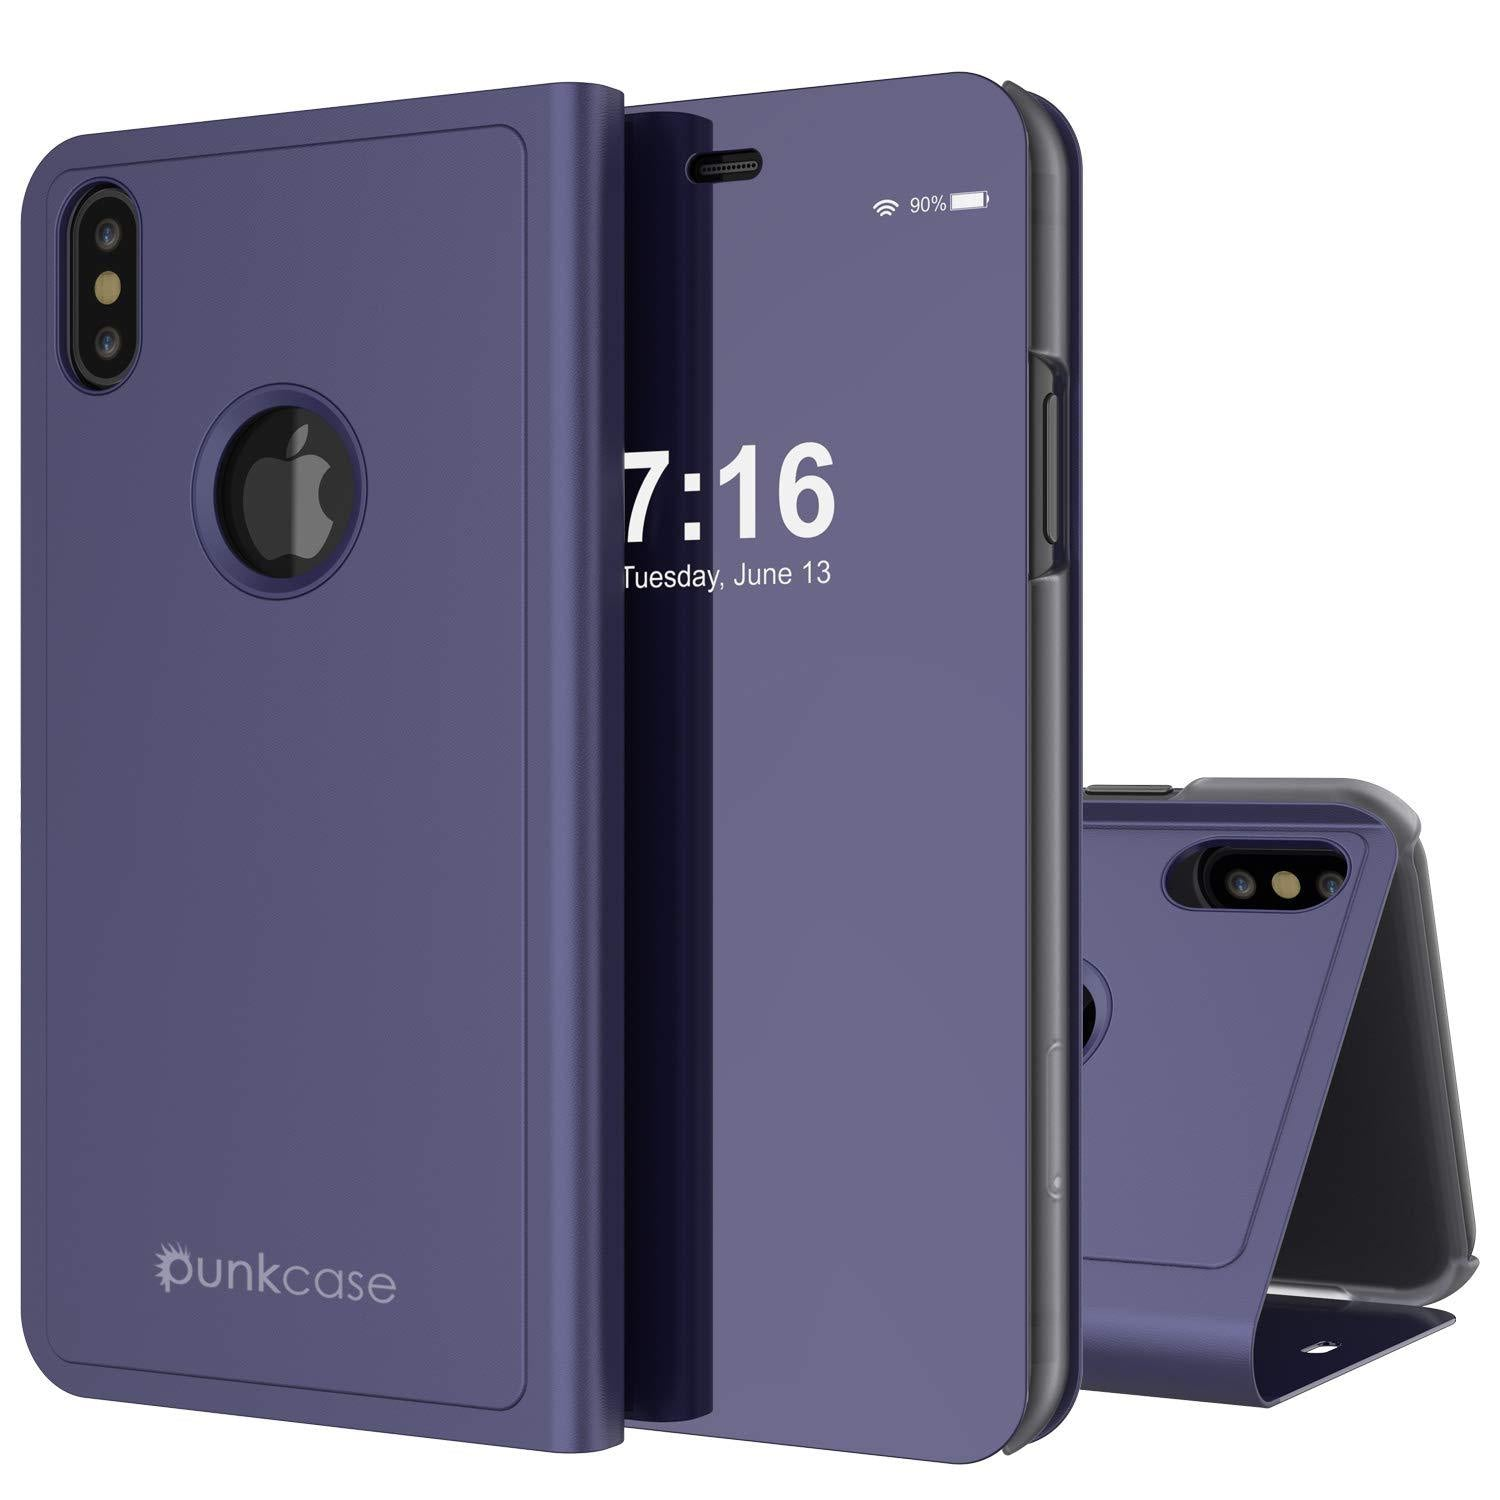 Punkcase iPhone XS Max Reflector Case Protective Flip Cover [Purple]